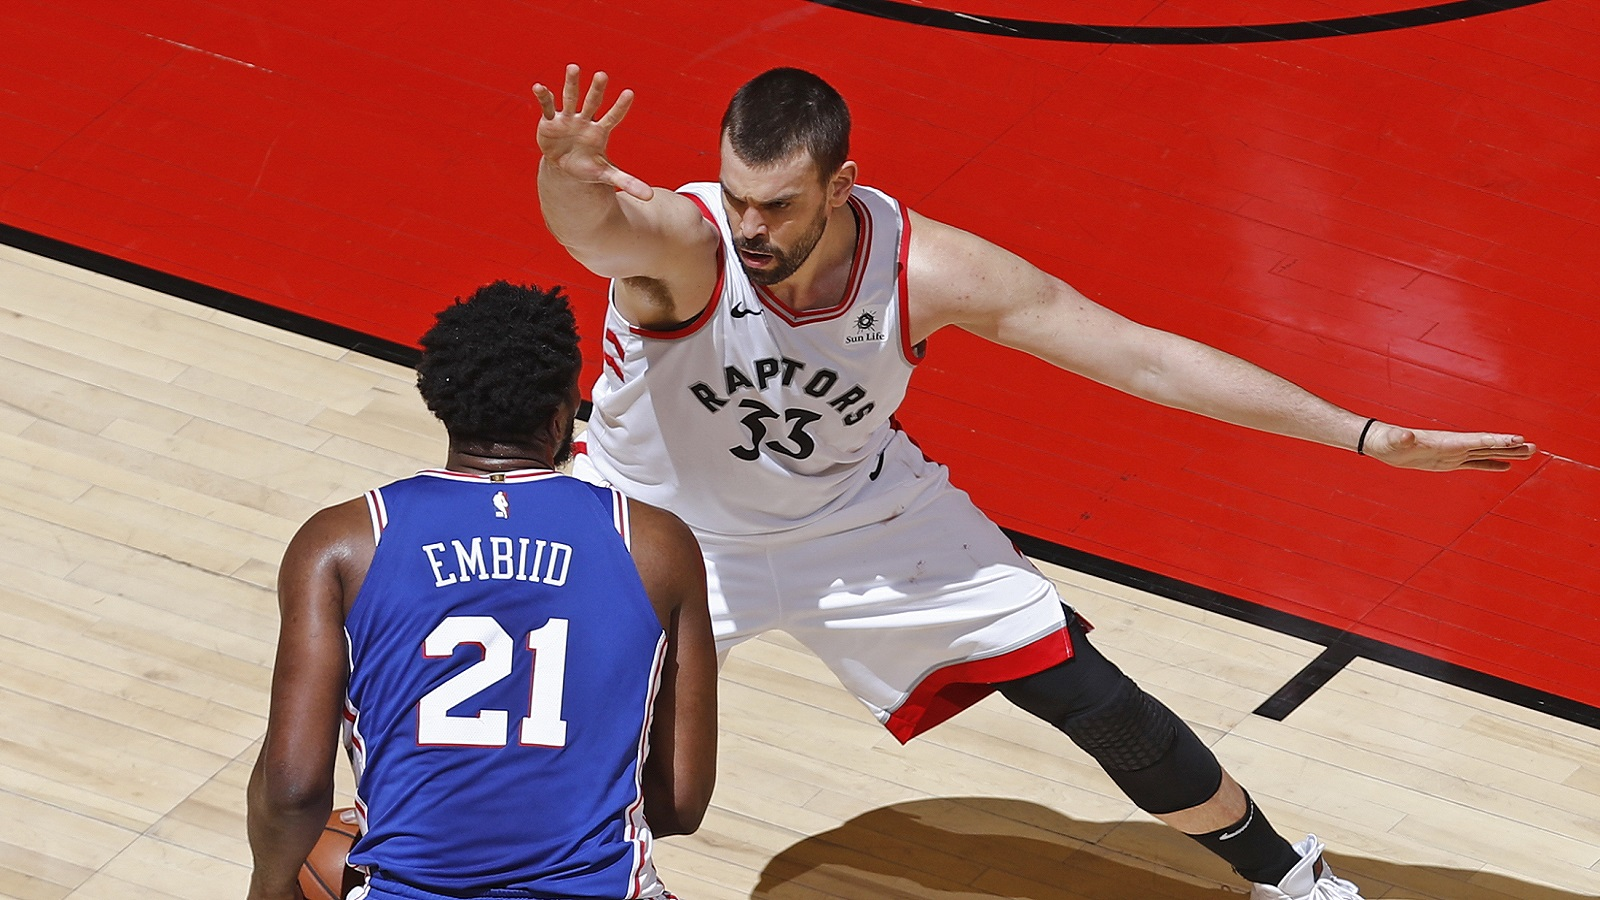 Reports: Marc Gasol to sign with Lakers